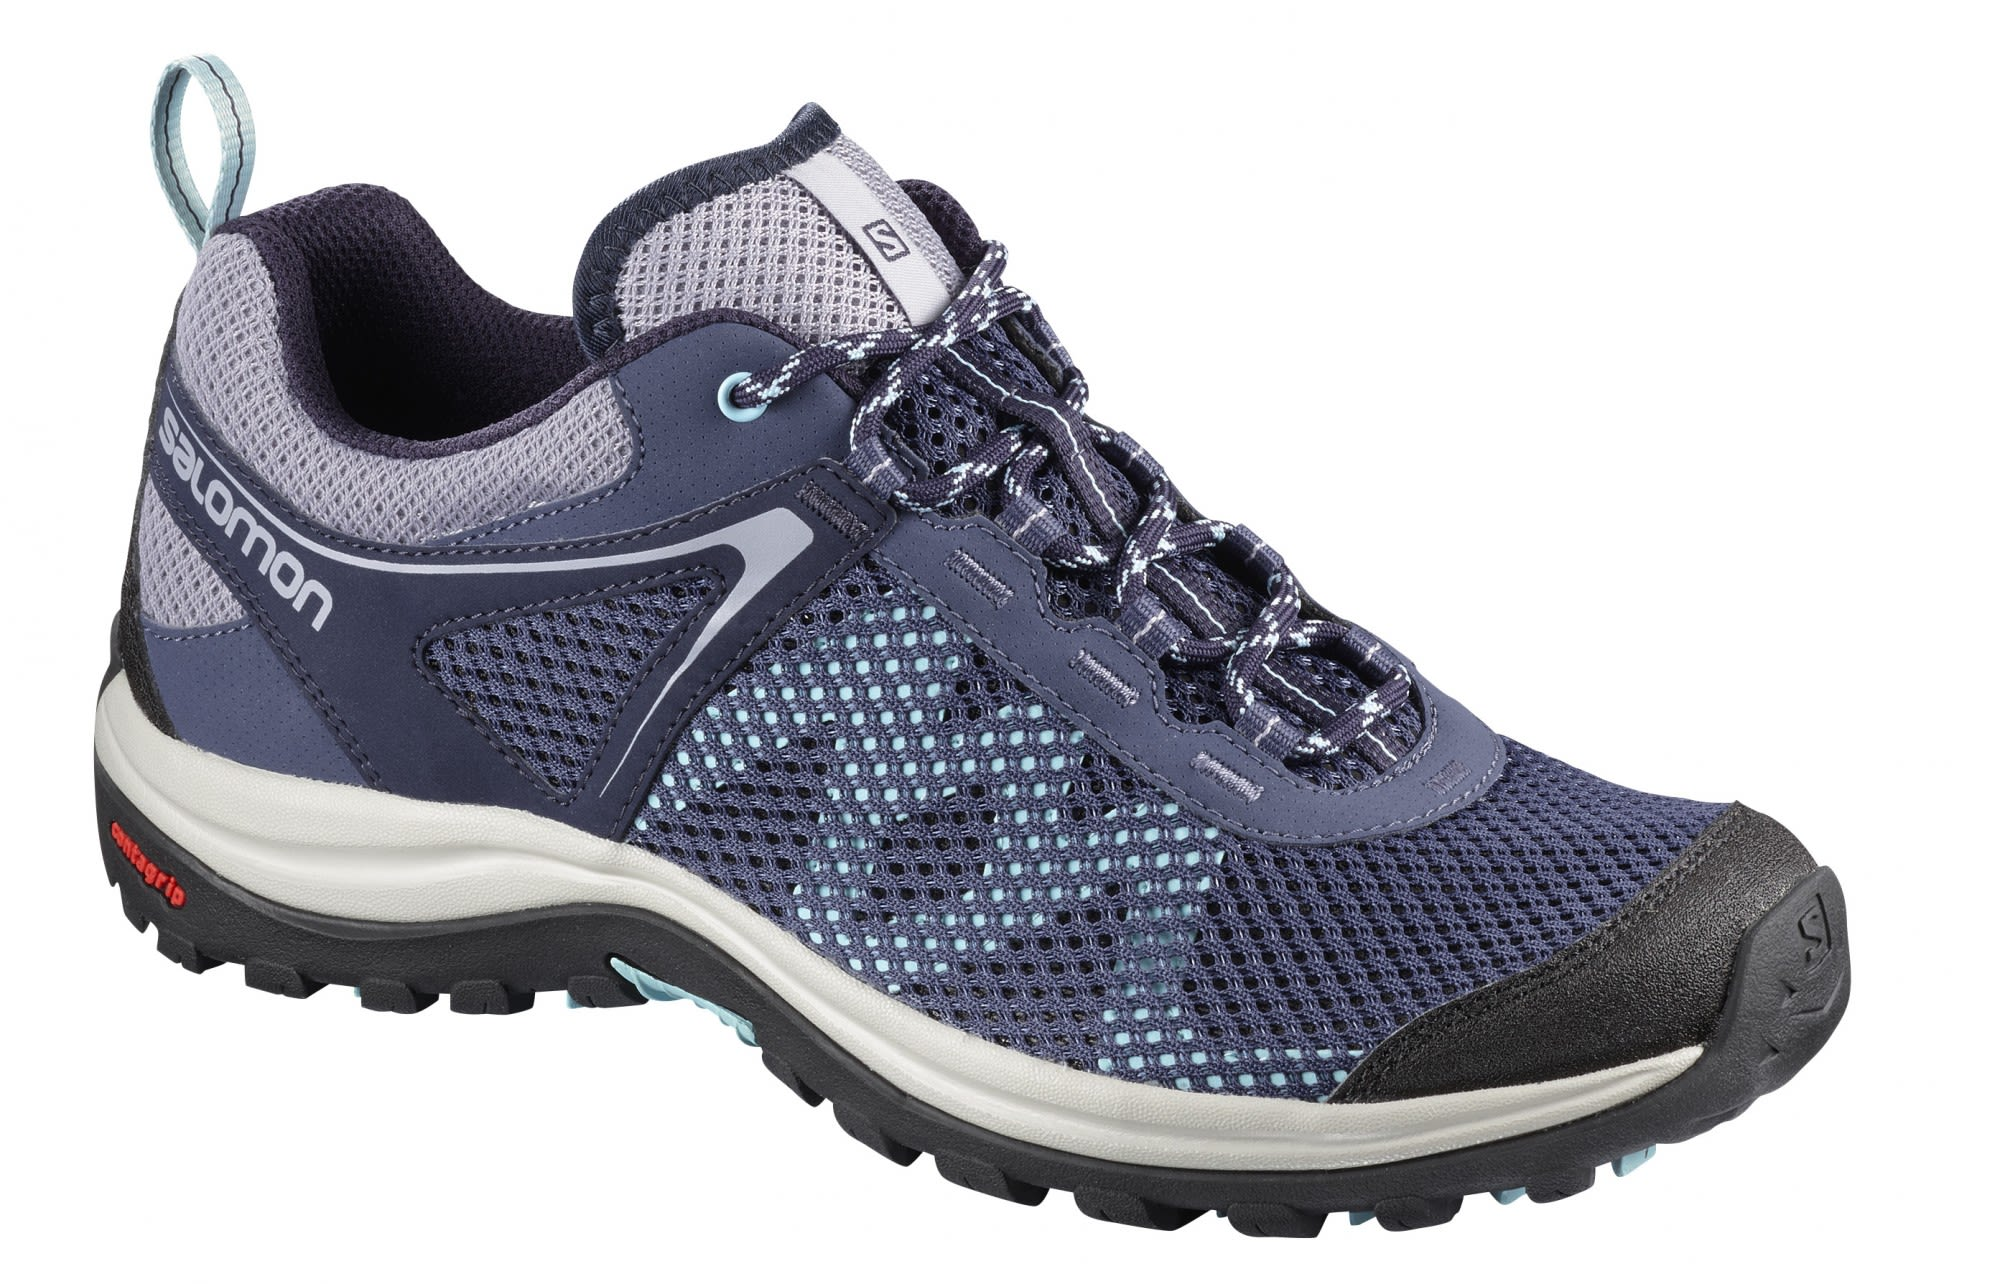 Salomon Ellipse Mehari Blau, Female EU 42 -Farbe Crown Blue -Evening Blue -Canal